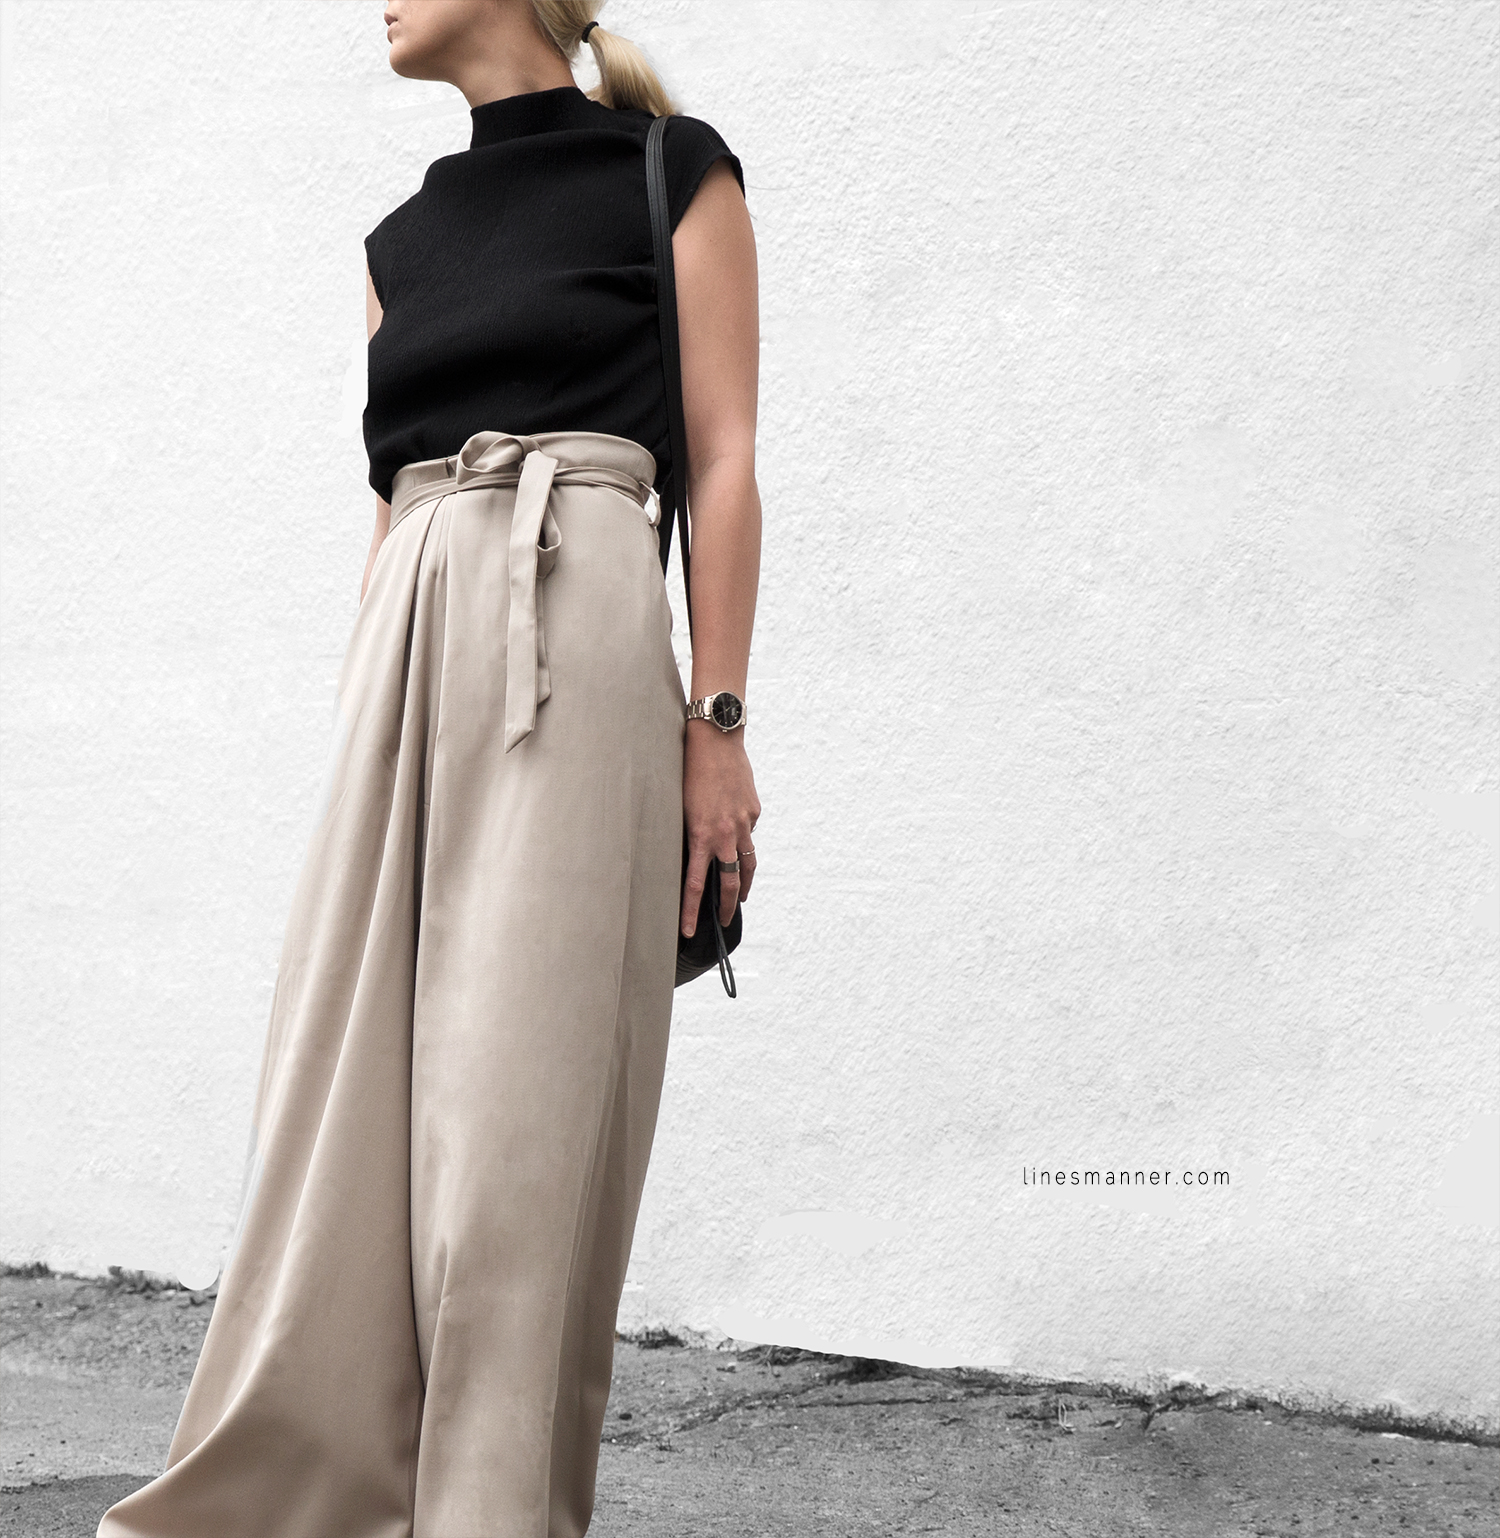 Lines-Manner-Neutrals-Quality-Lora_Gene-Wide_Leg_Pant-Modern-Sophistication-Tailored-Essentials-Details-Simplicity-Summer_vibes-Volume-Proportion-Flowy-11